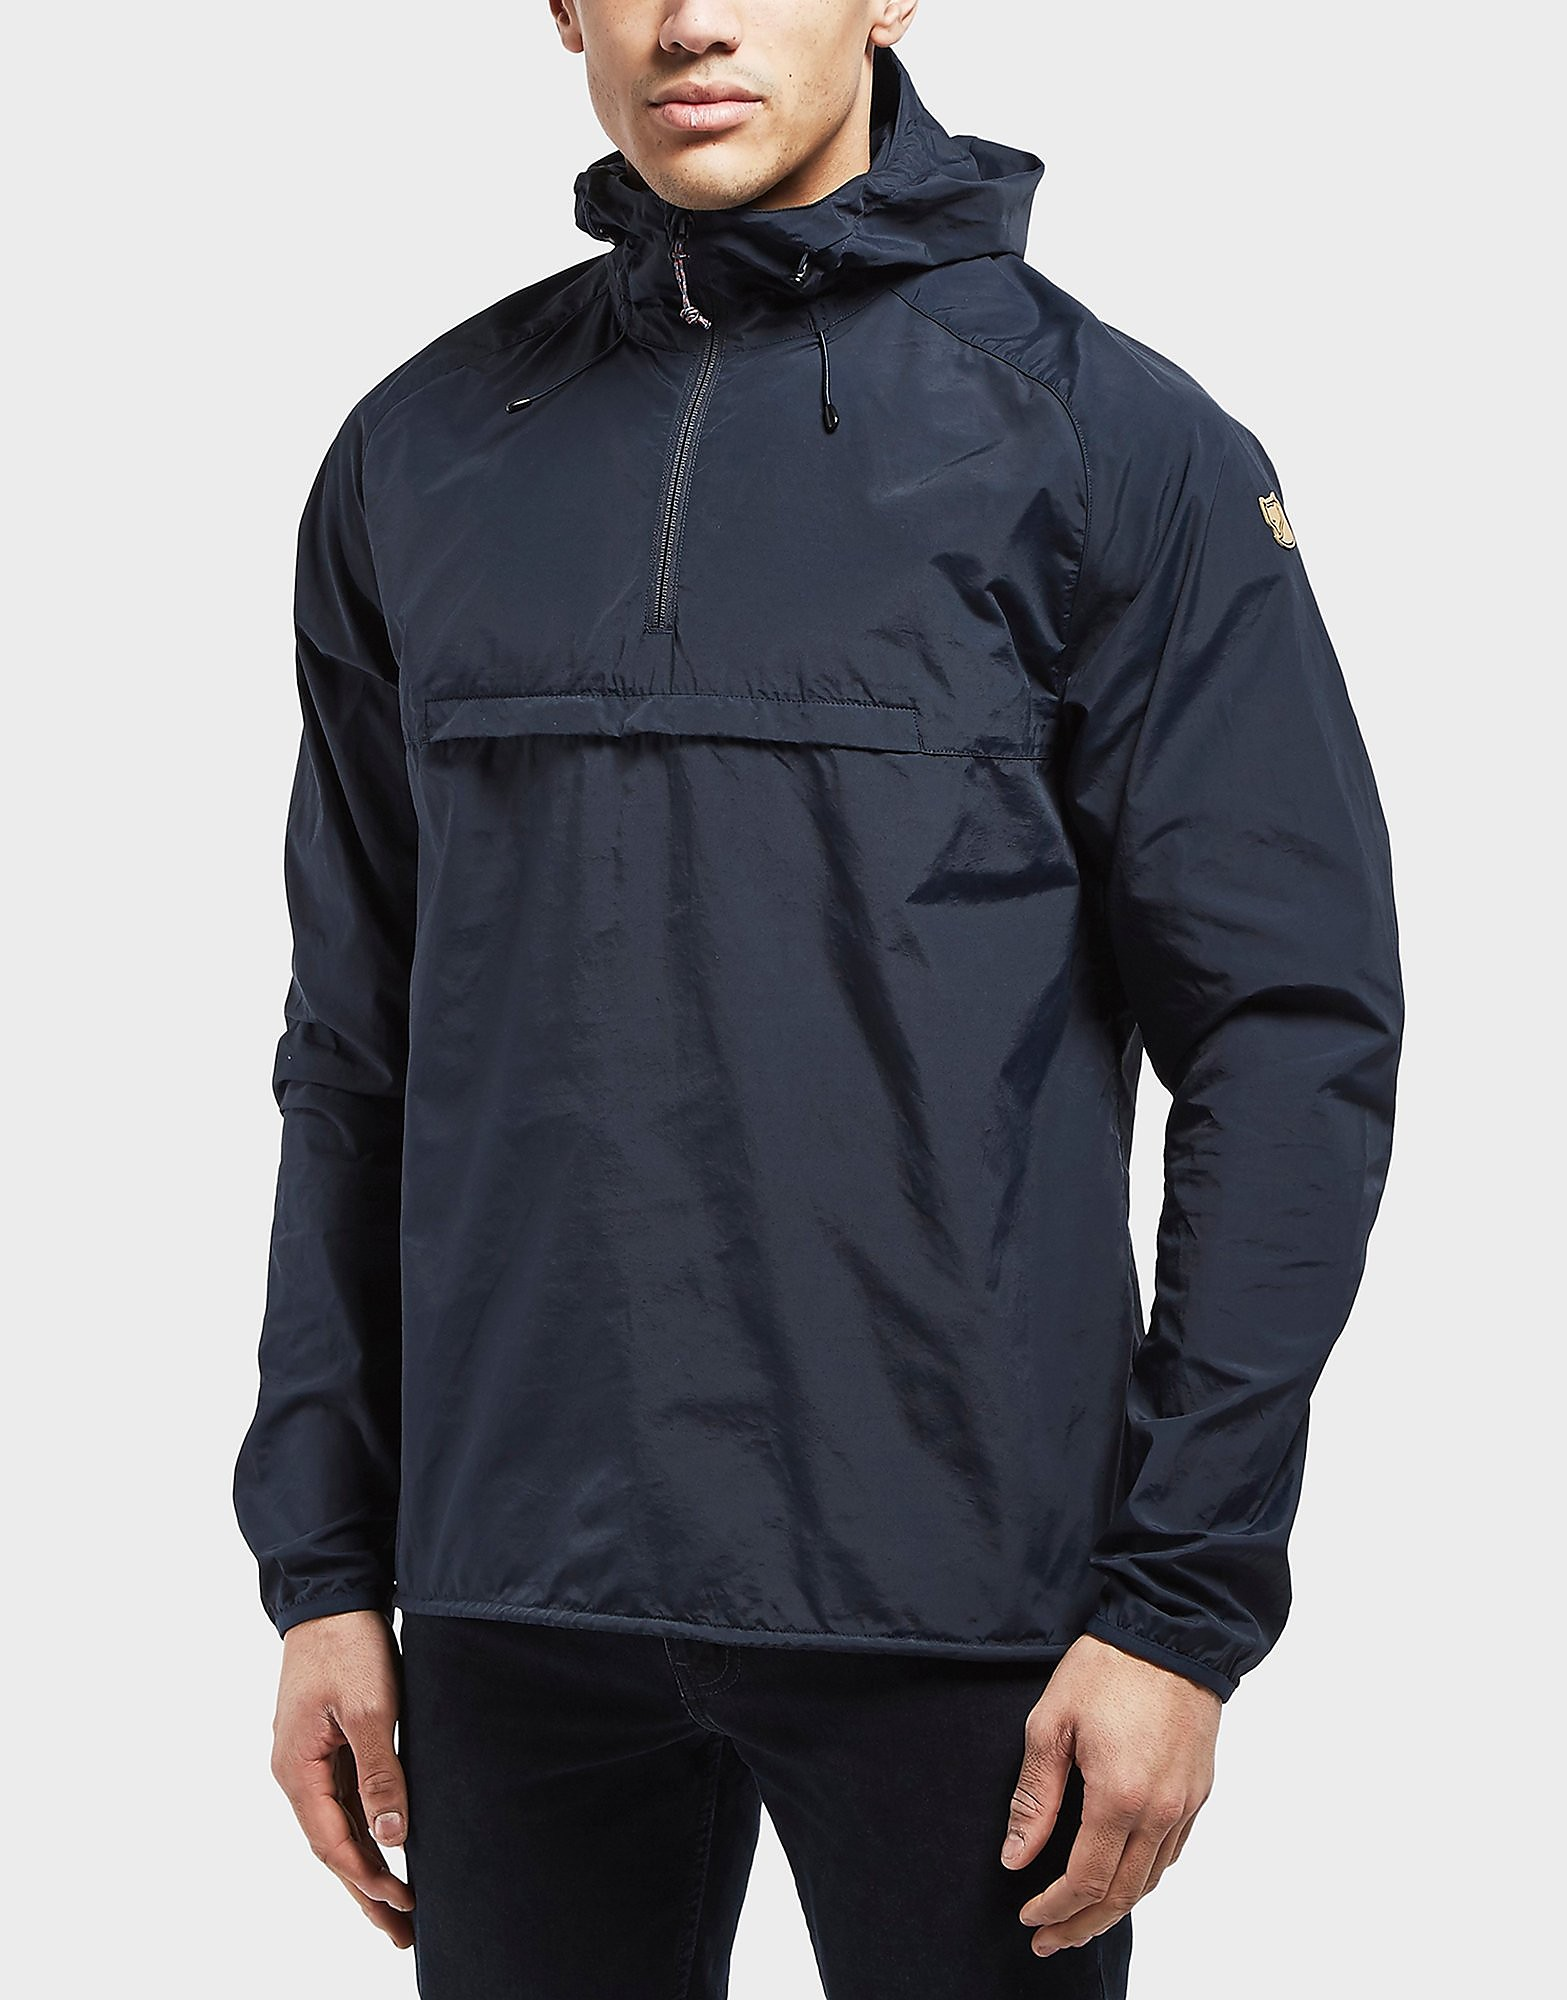 Fjallraven High Coast Jacket